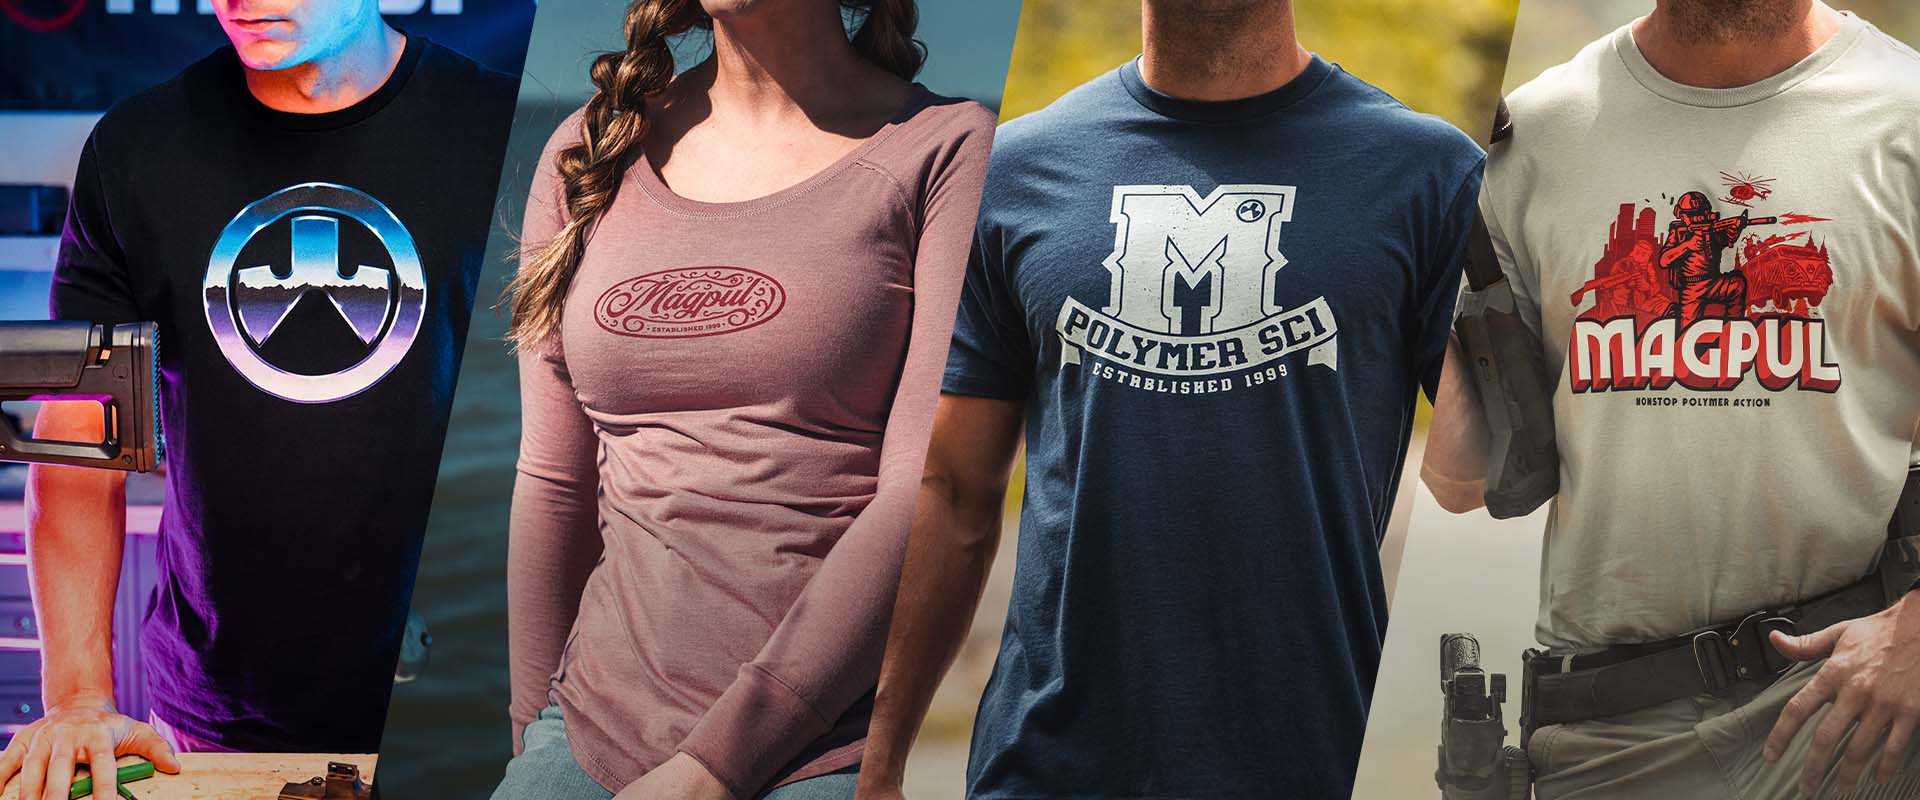 A multitude of new Magpul Tees